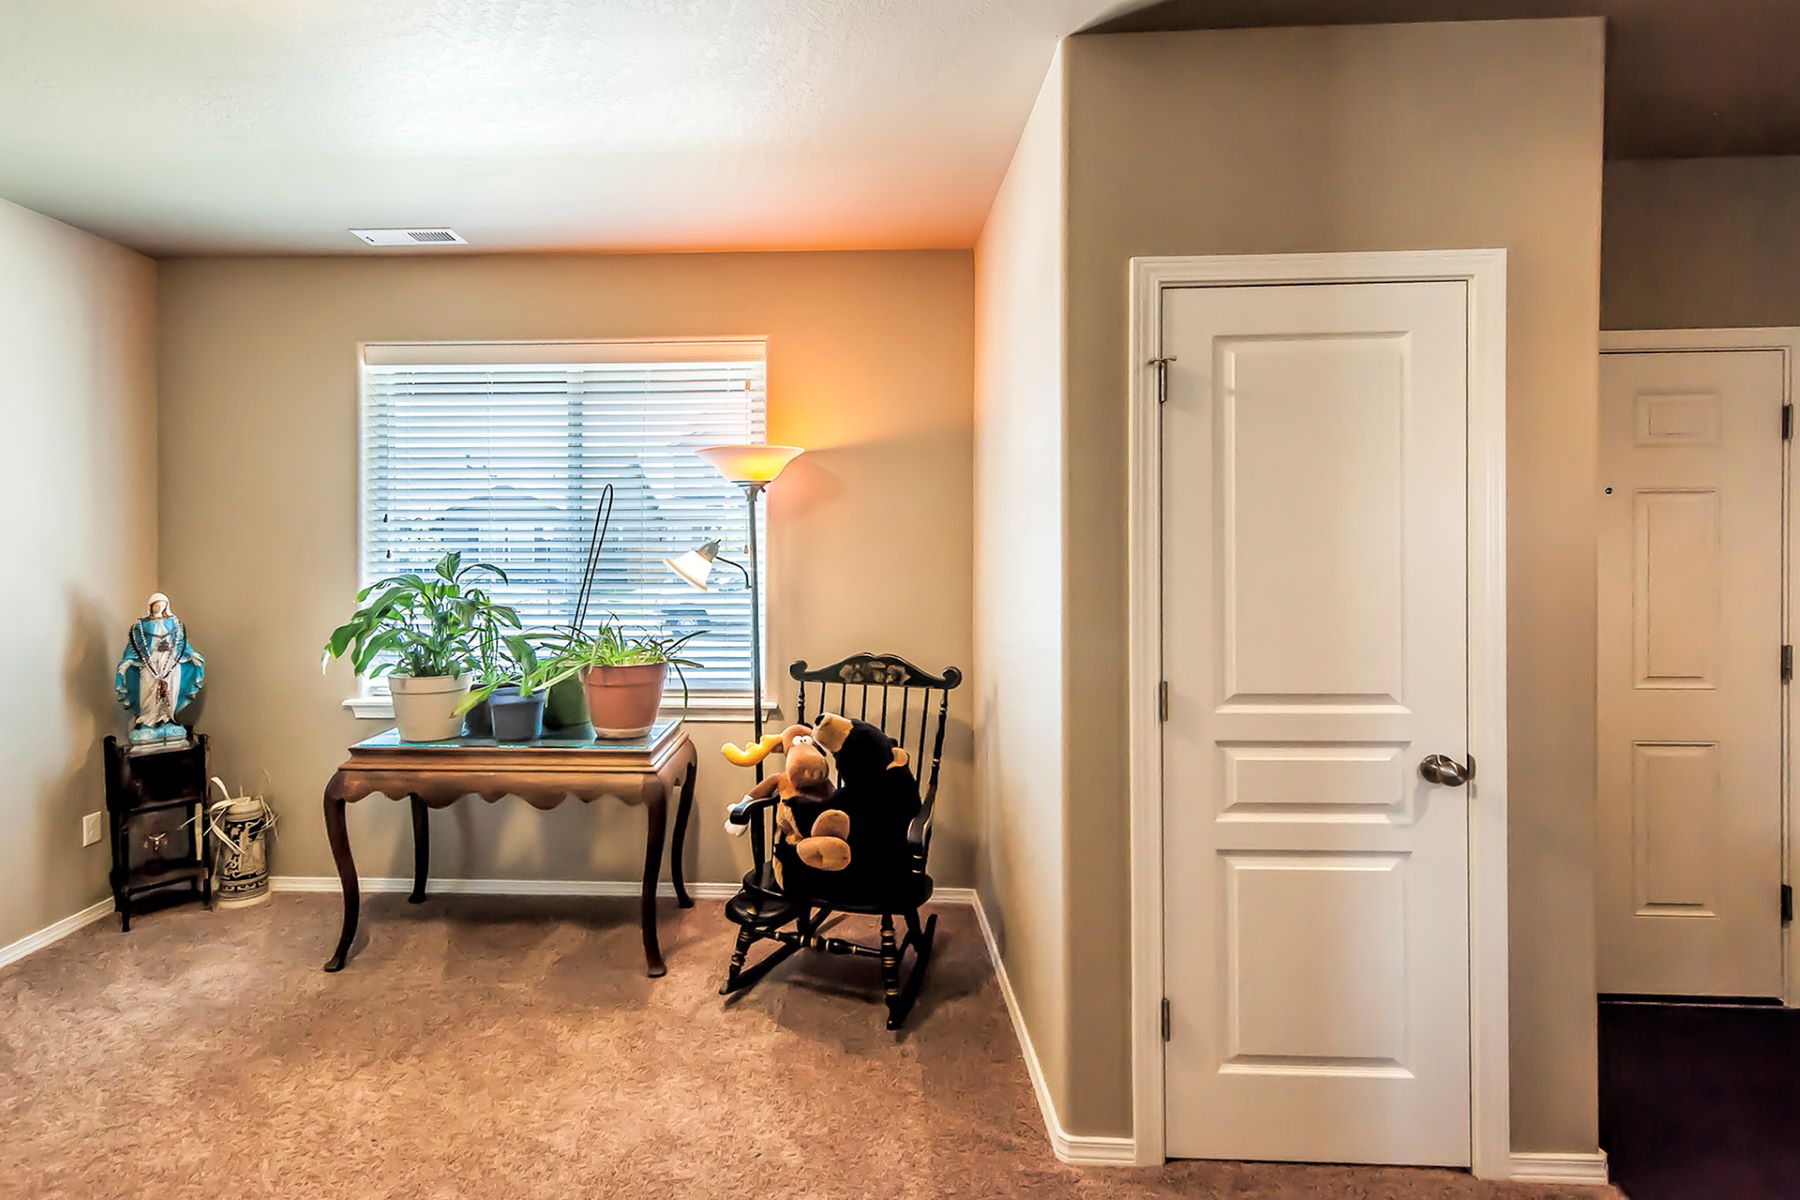 Single Family Homes for Sale at Graceful layout in welcoming neighborhood 1224 SW Settlement Street College Place, Washington 99324 United States